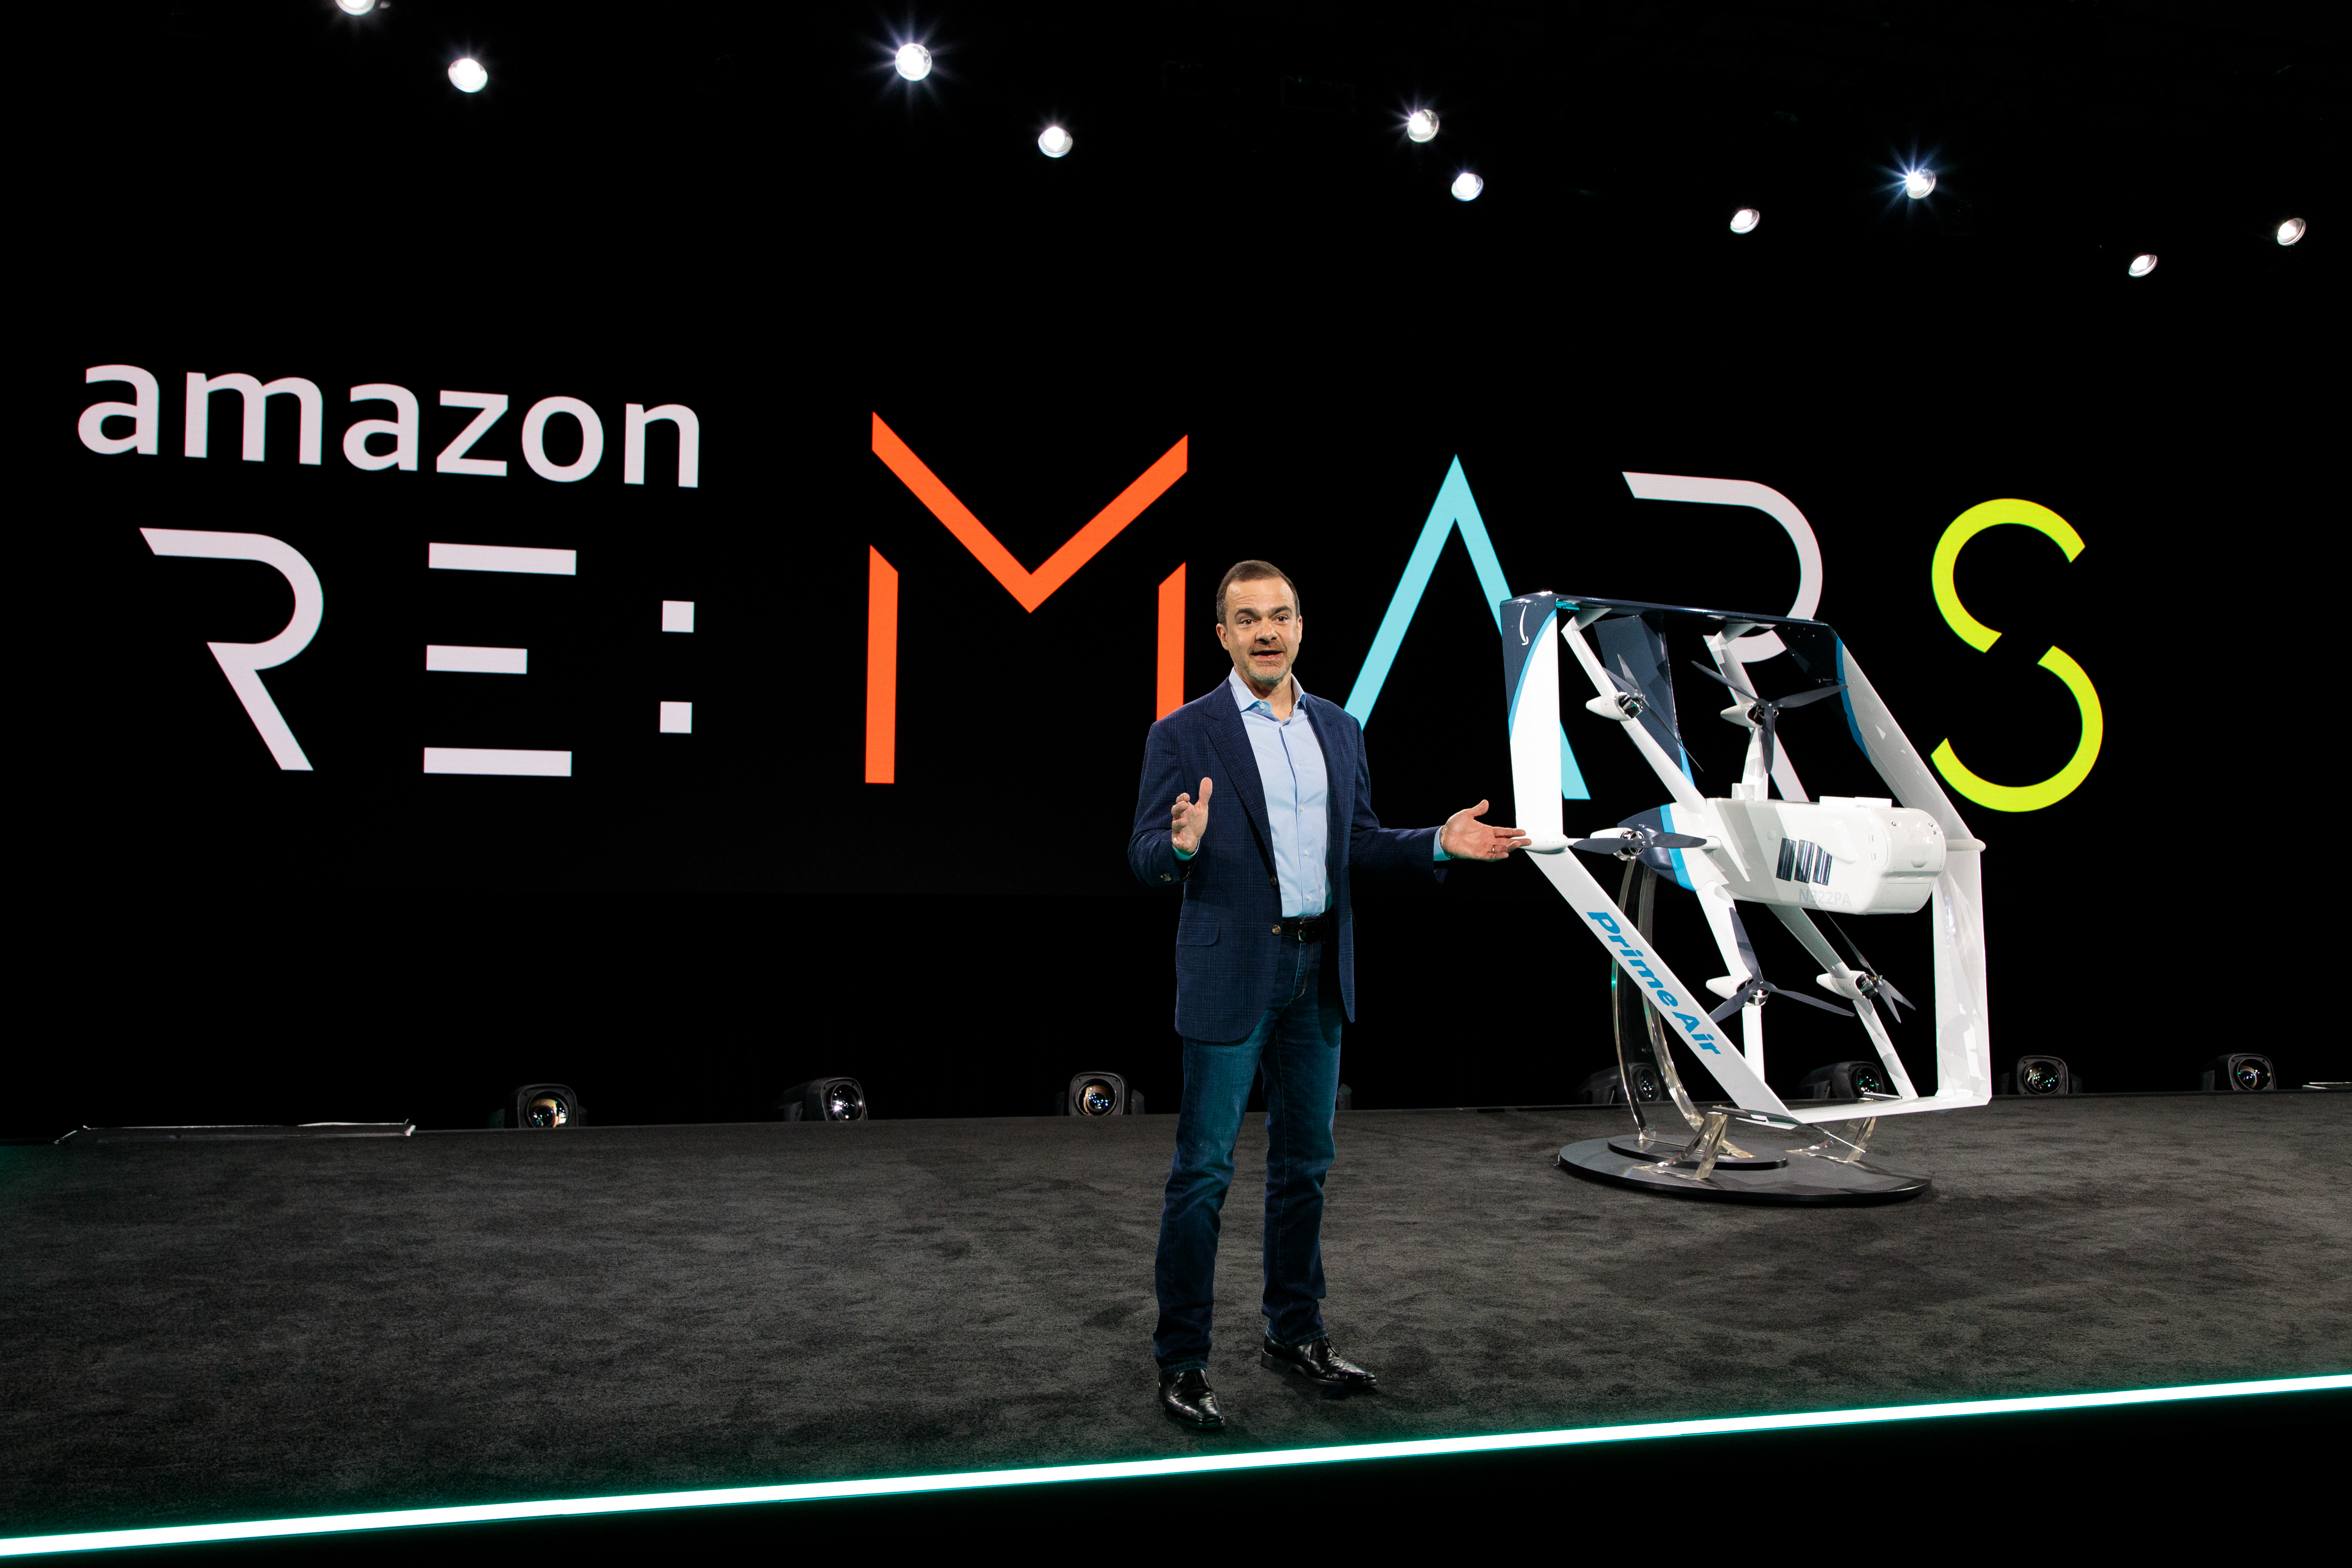 A first look at Amazon's new delivery drone